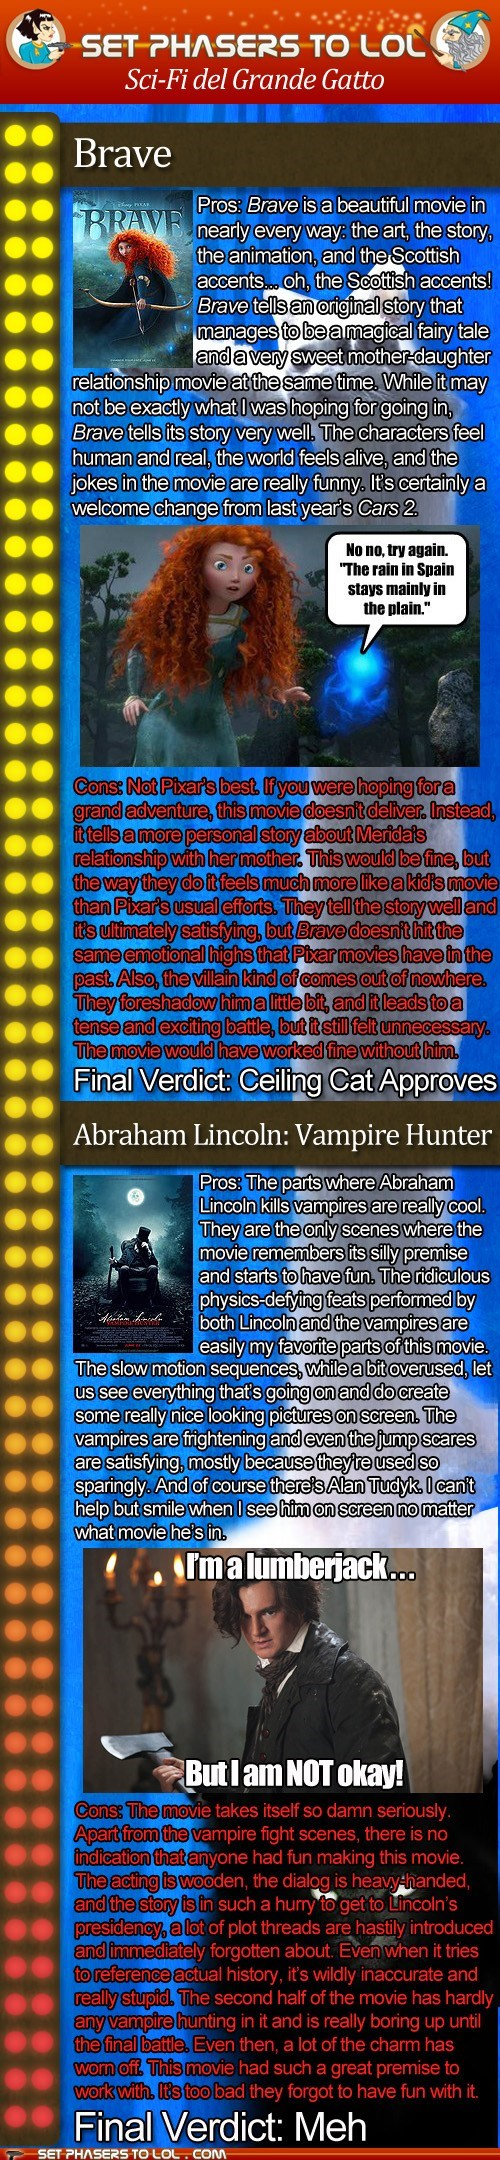 abraham lincoln vampire h alan tudyk benjamin walker brave grande gatto merida movies reviews - 6360196864